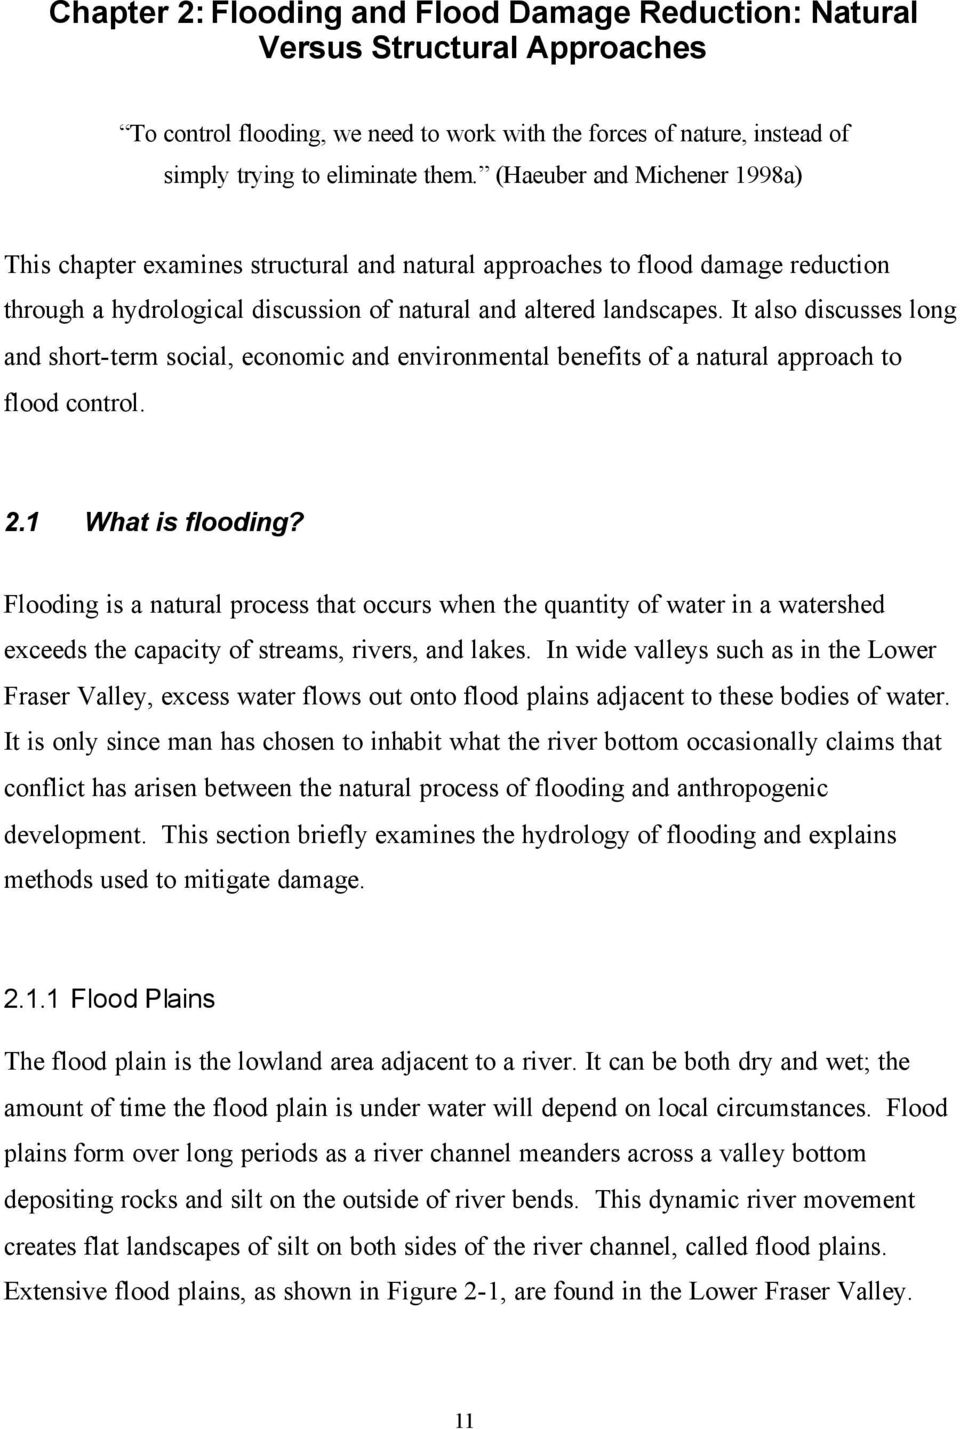 It also discusses long and short-term social, economic and environmental benefits of a natural approach to flood control. 2.1 What is flooding?